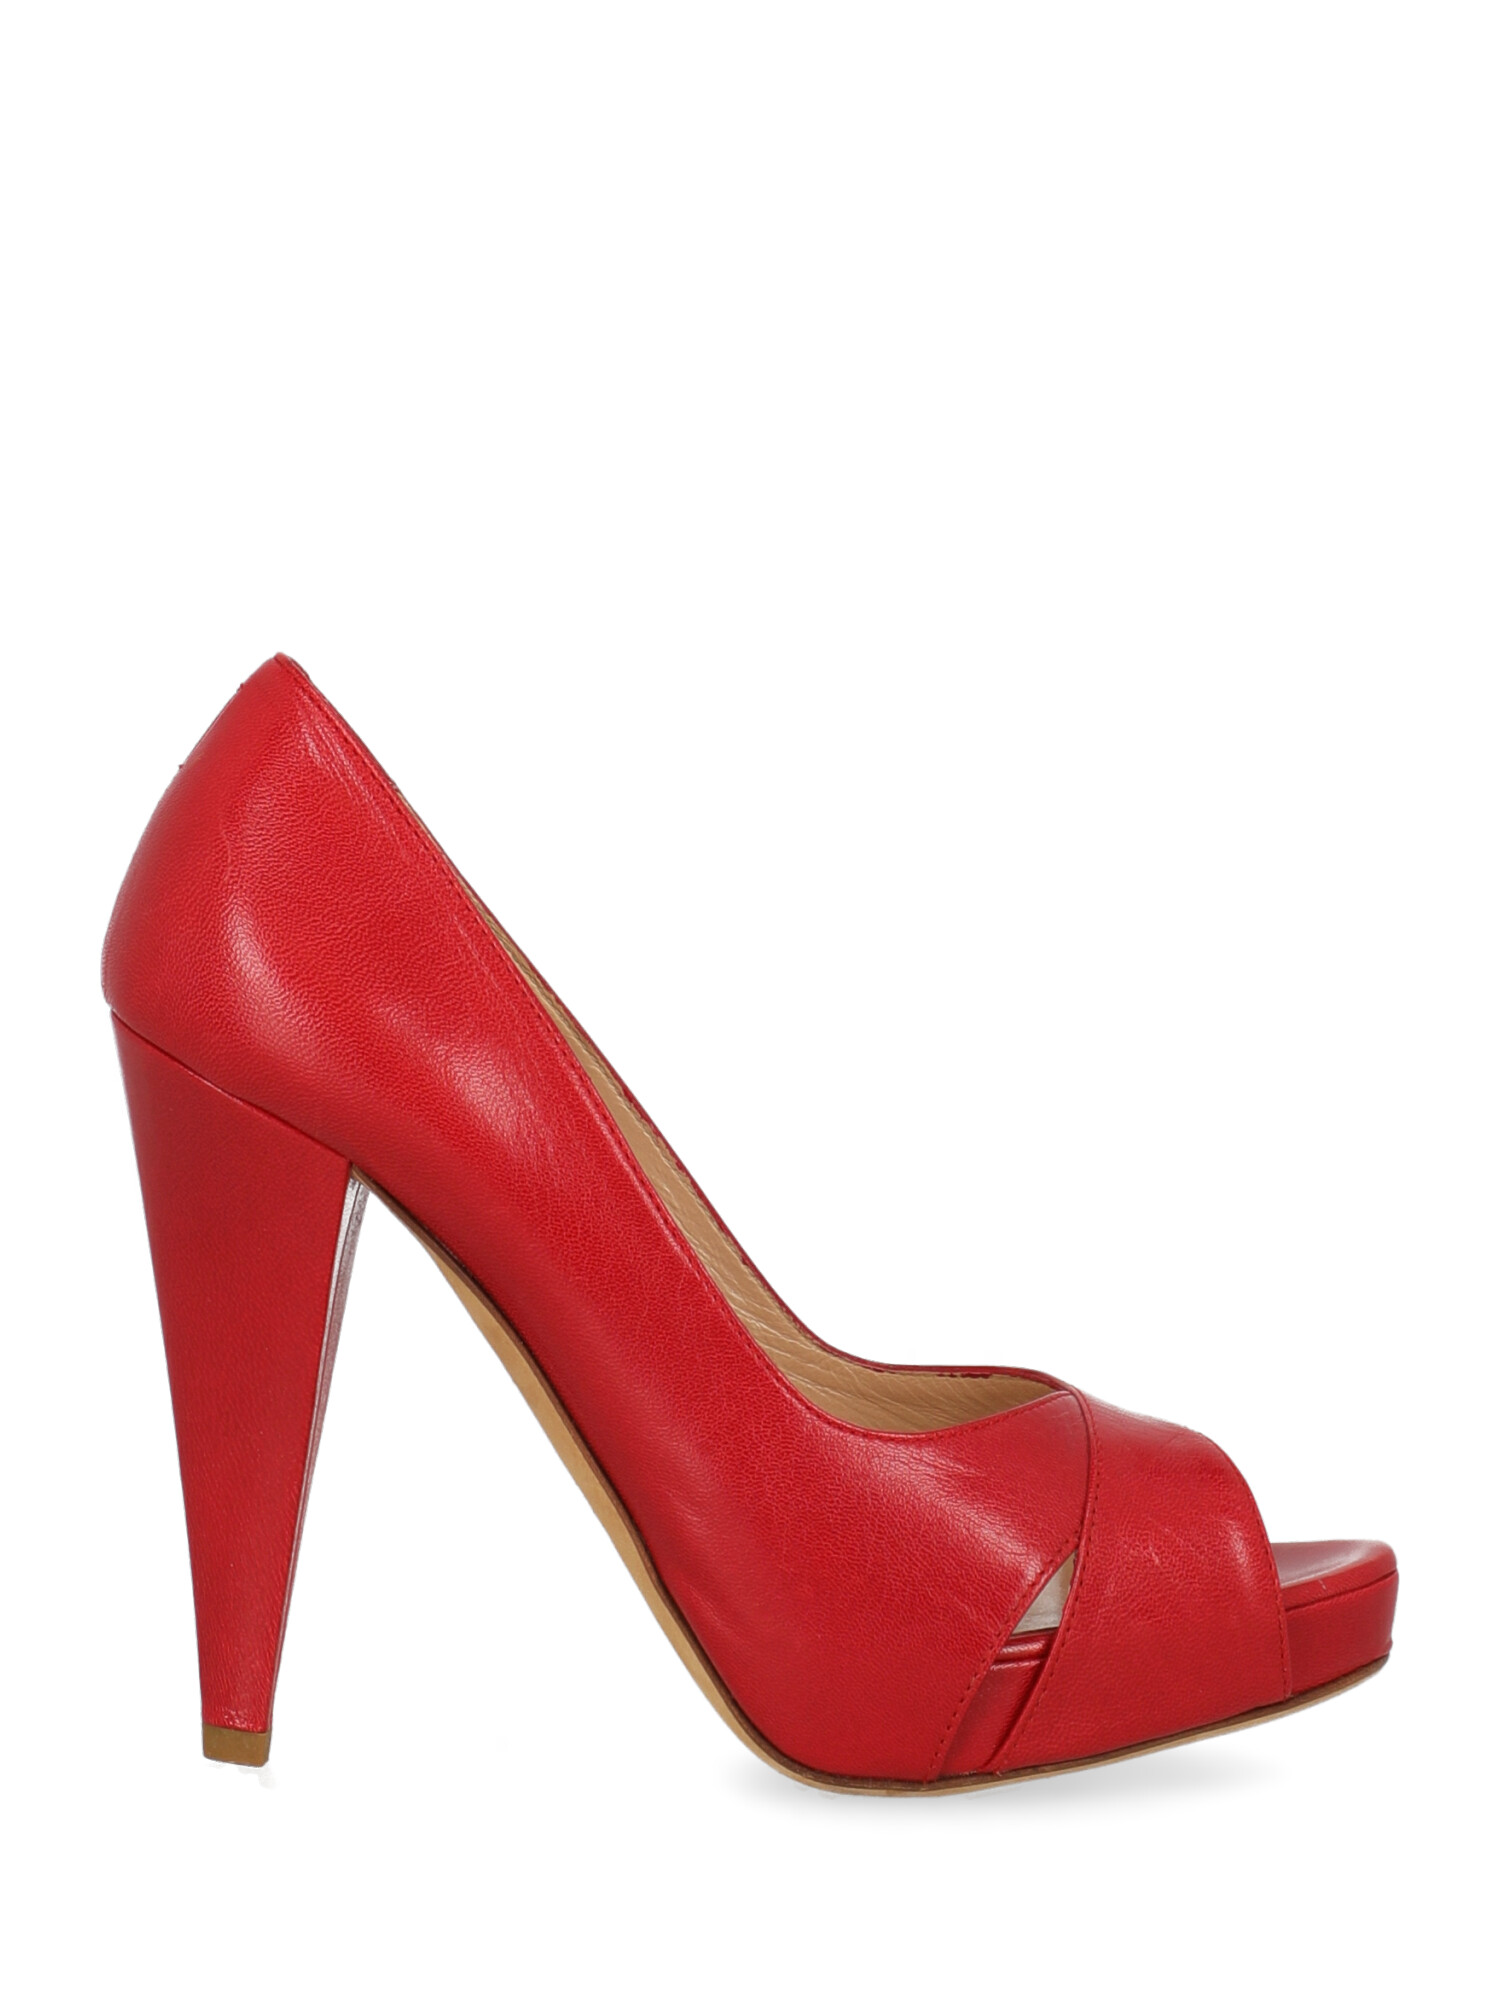 Pre-owned Bally Shoe In Red